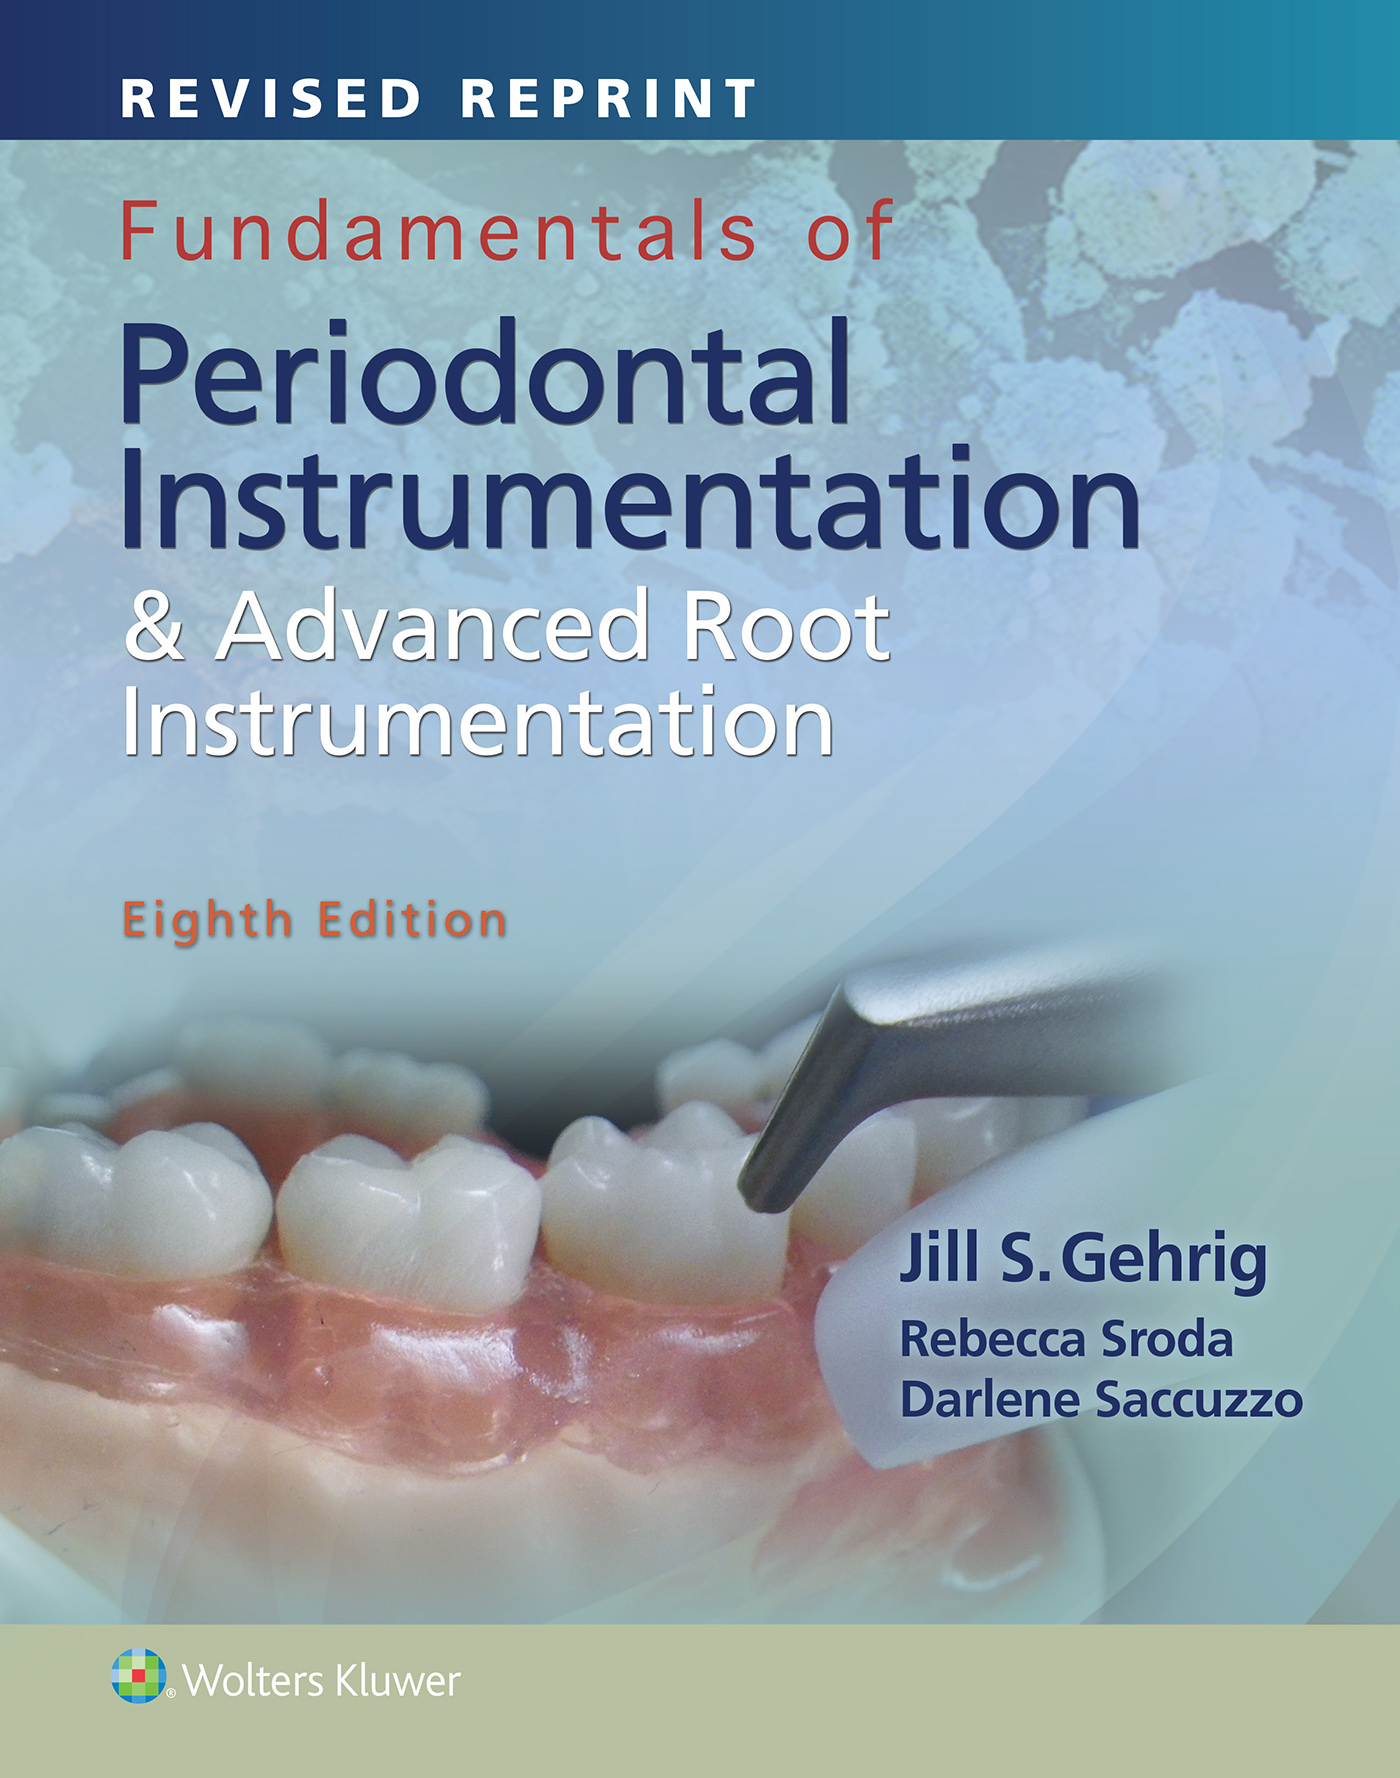 Fundamentals Of Periodontal Instrumentation And Advanced Root Instrumentation, Revised Reprint